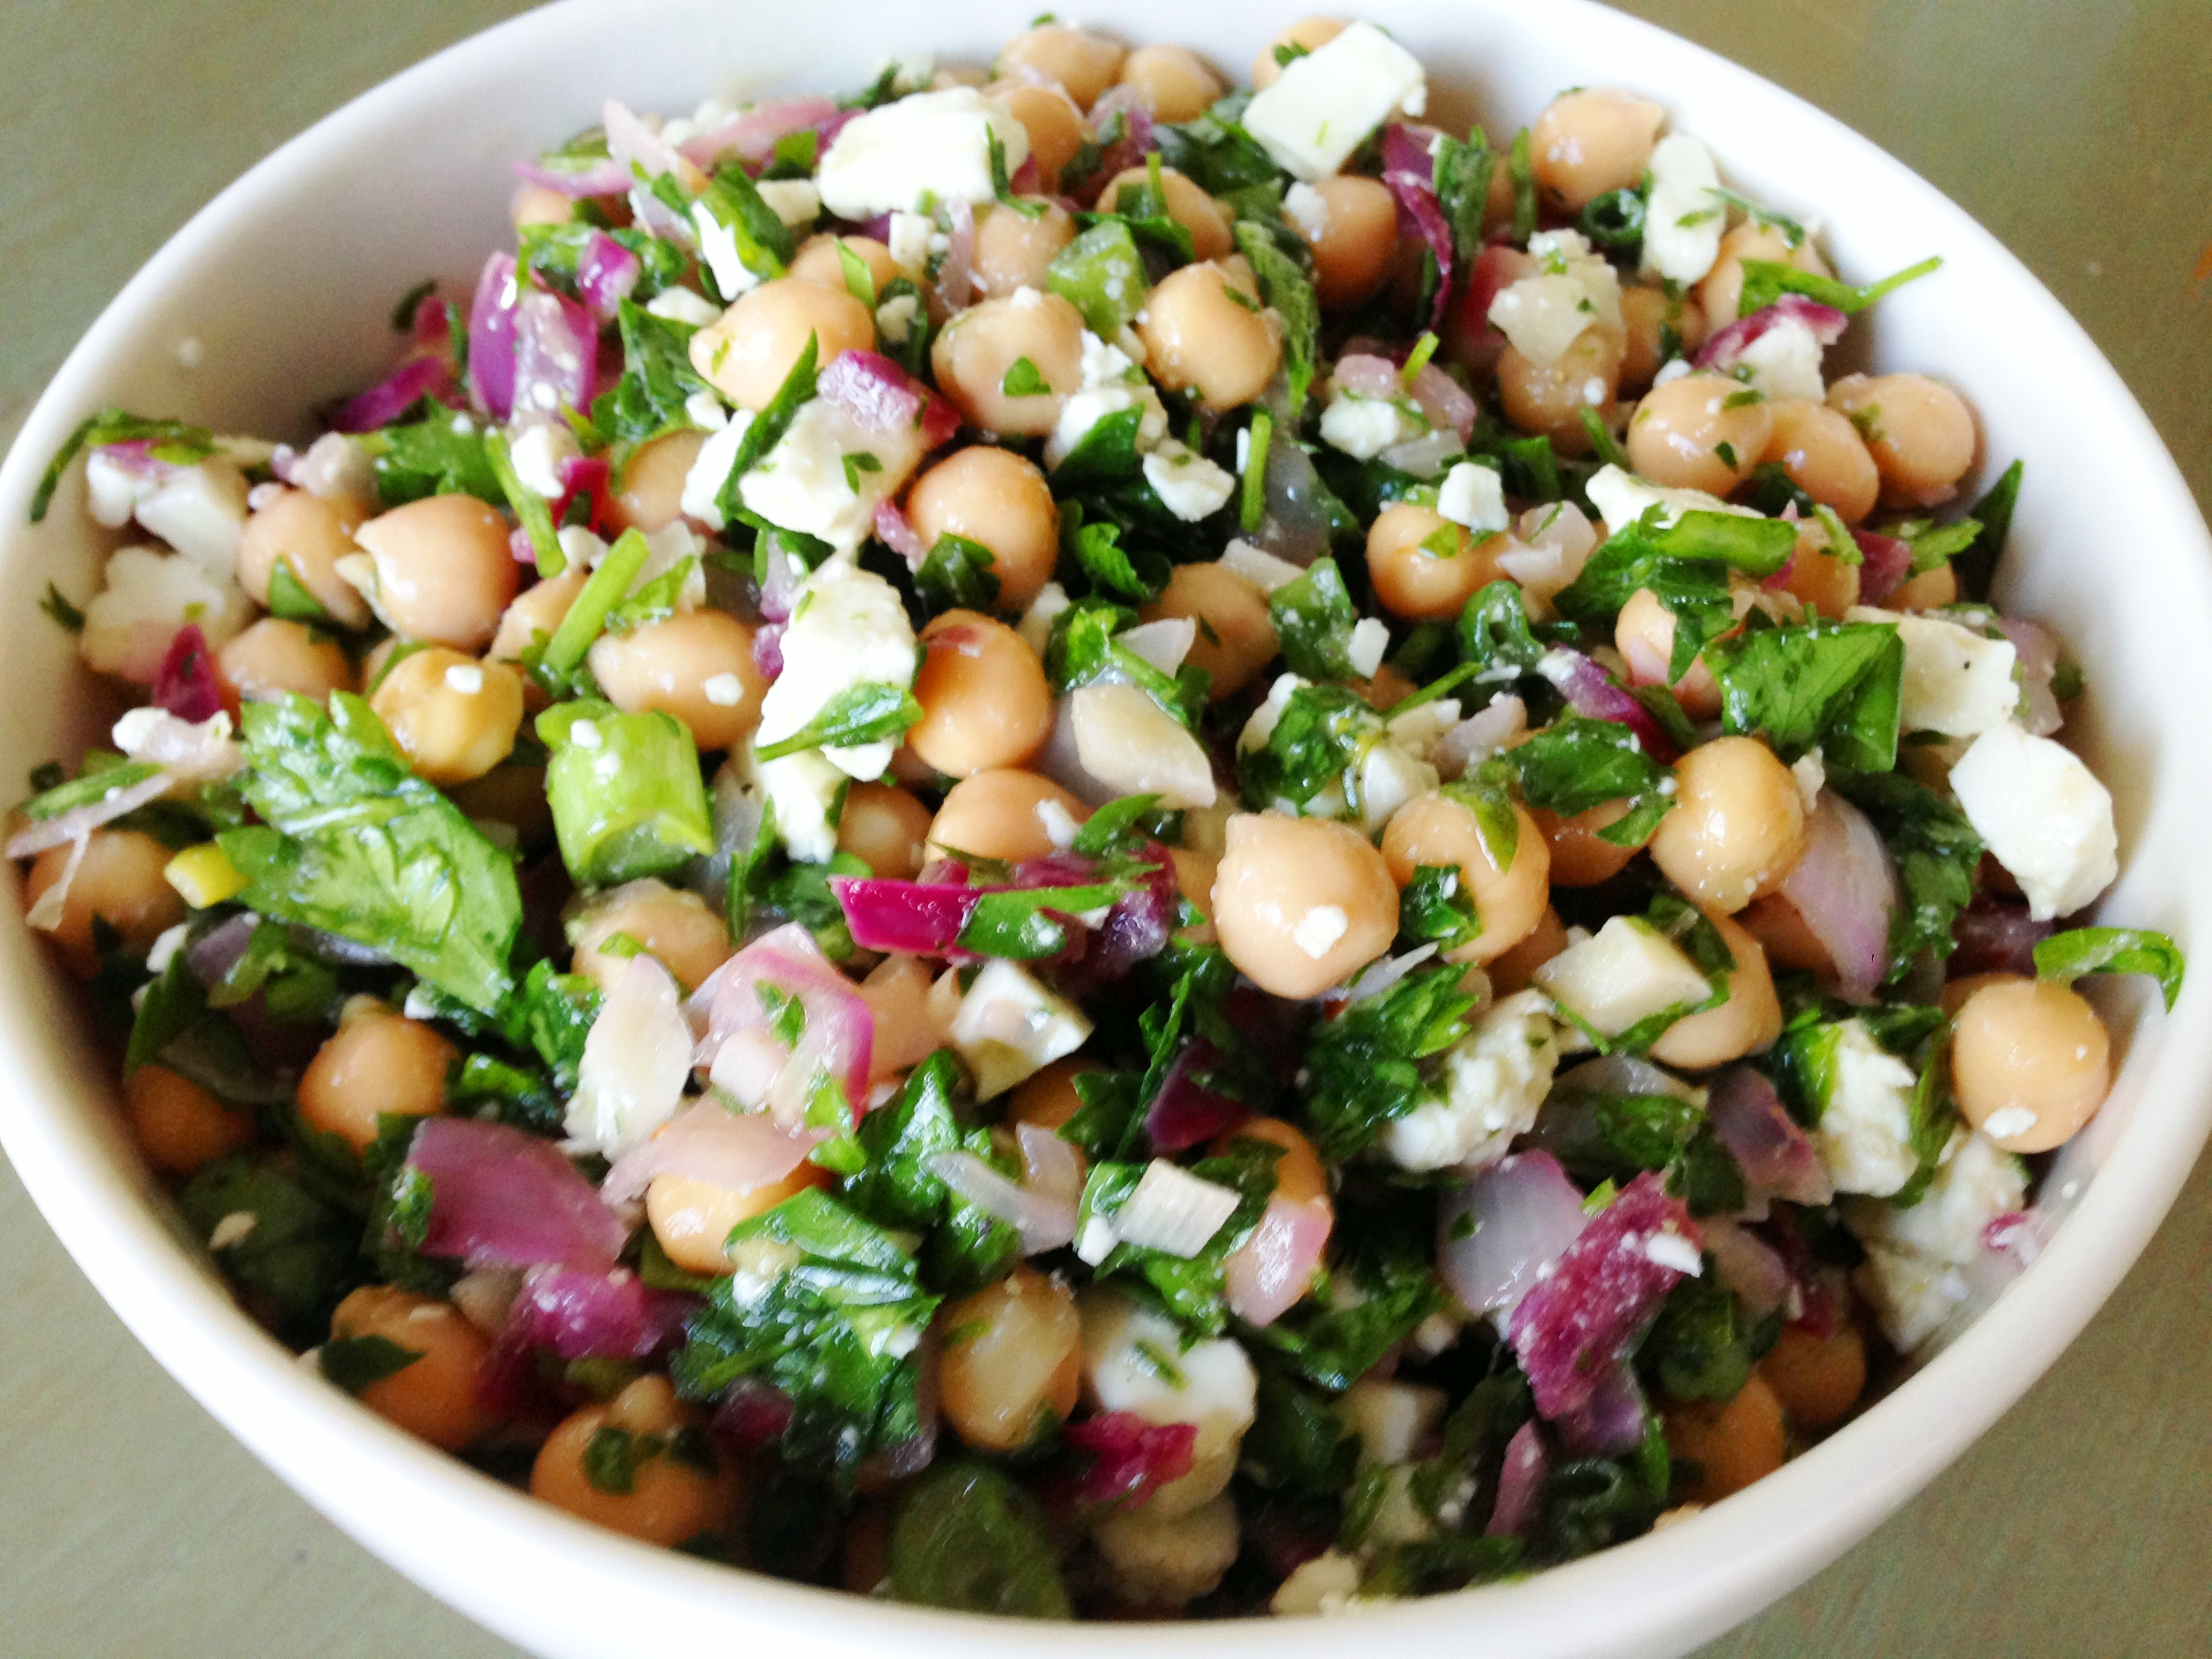 Chickpea Feta Salad with Herbs | Outside the Cereal Box